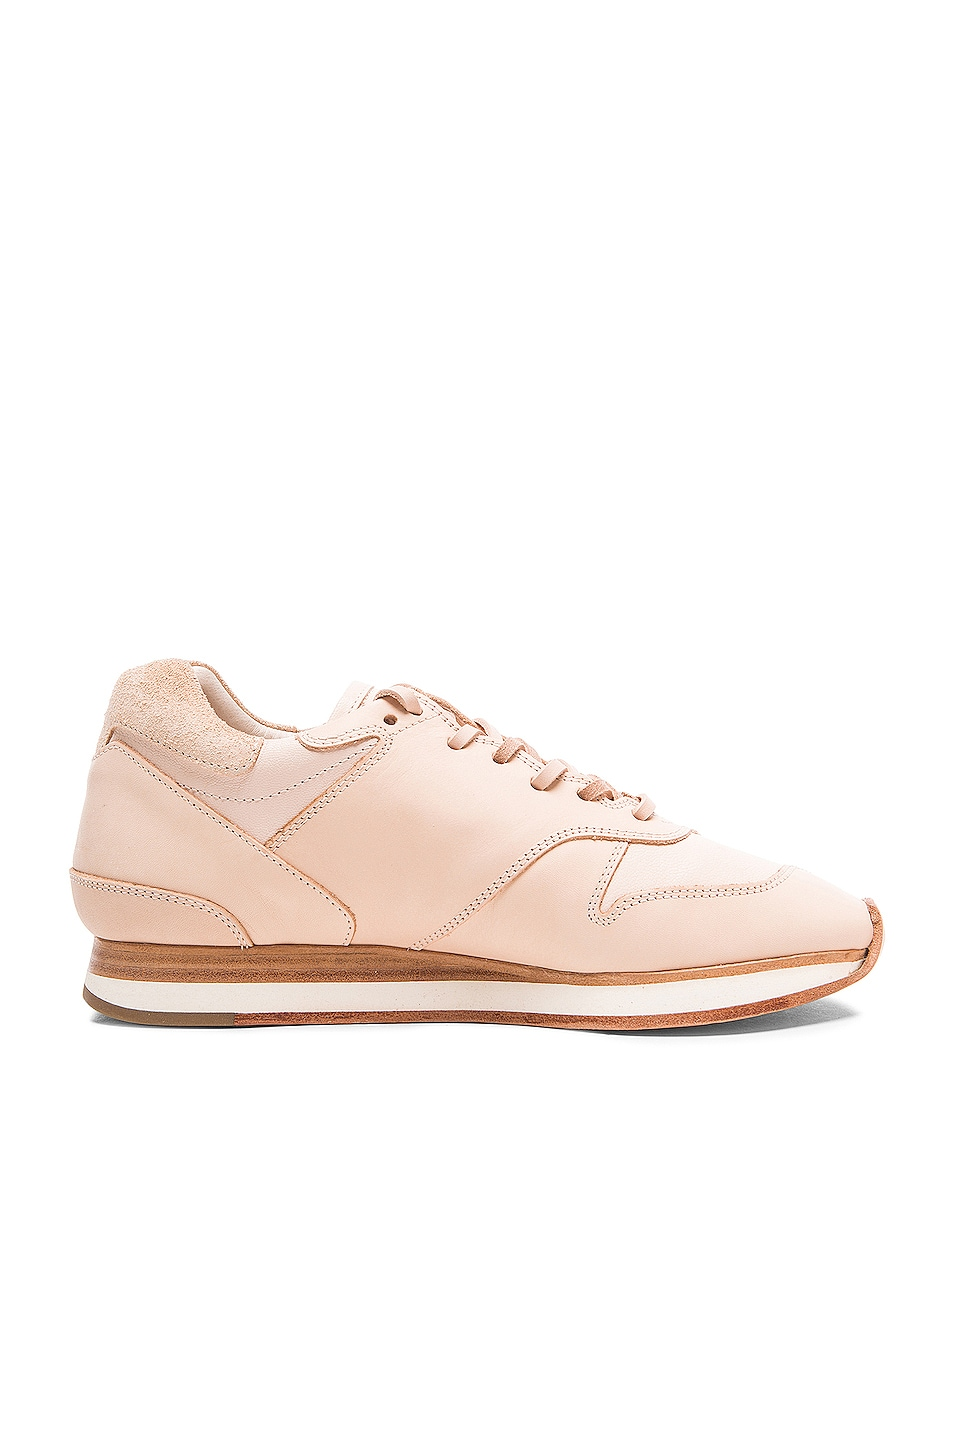 Image 1 of Hender Scheme Manual Industrial Product 08 in Natural